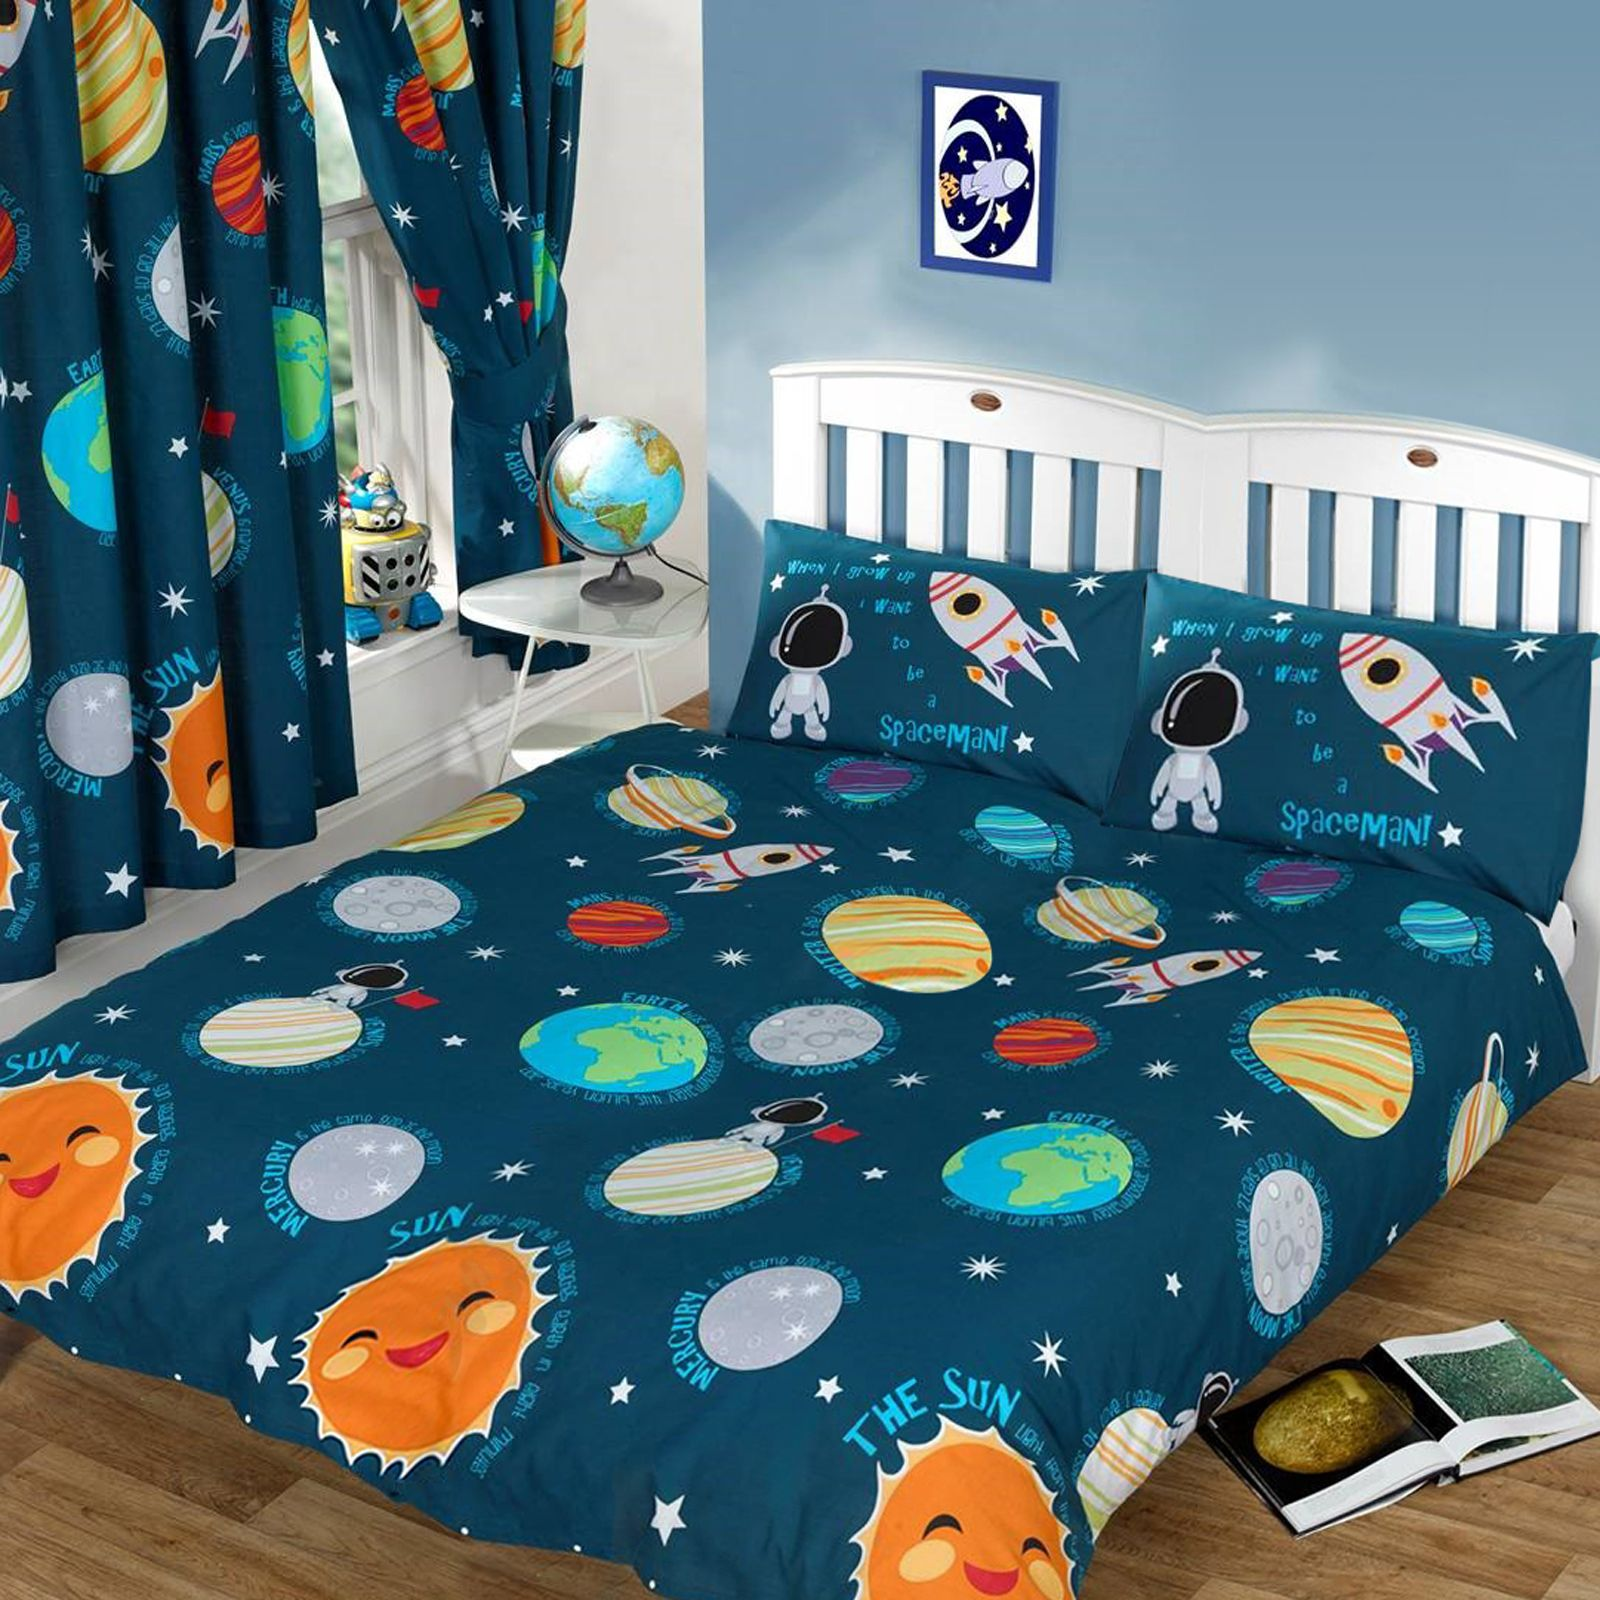 kinder doppelbett bettw sche sets dinosaur armee v gel raum jungen m dchen ebay. Black Bedroom Furniture Sets. Home Design Ideas